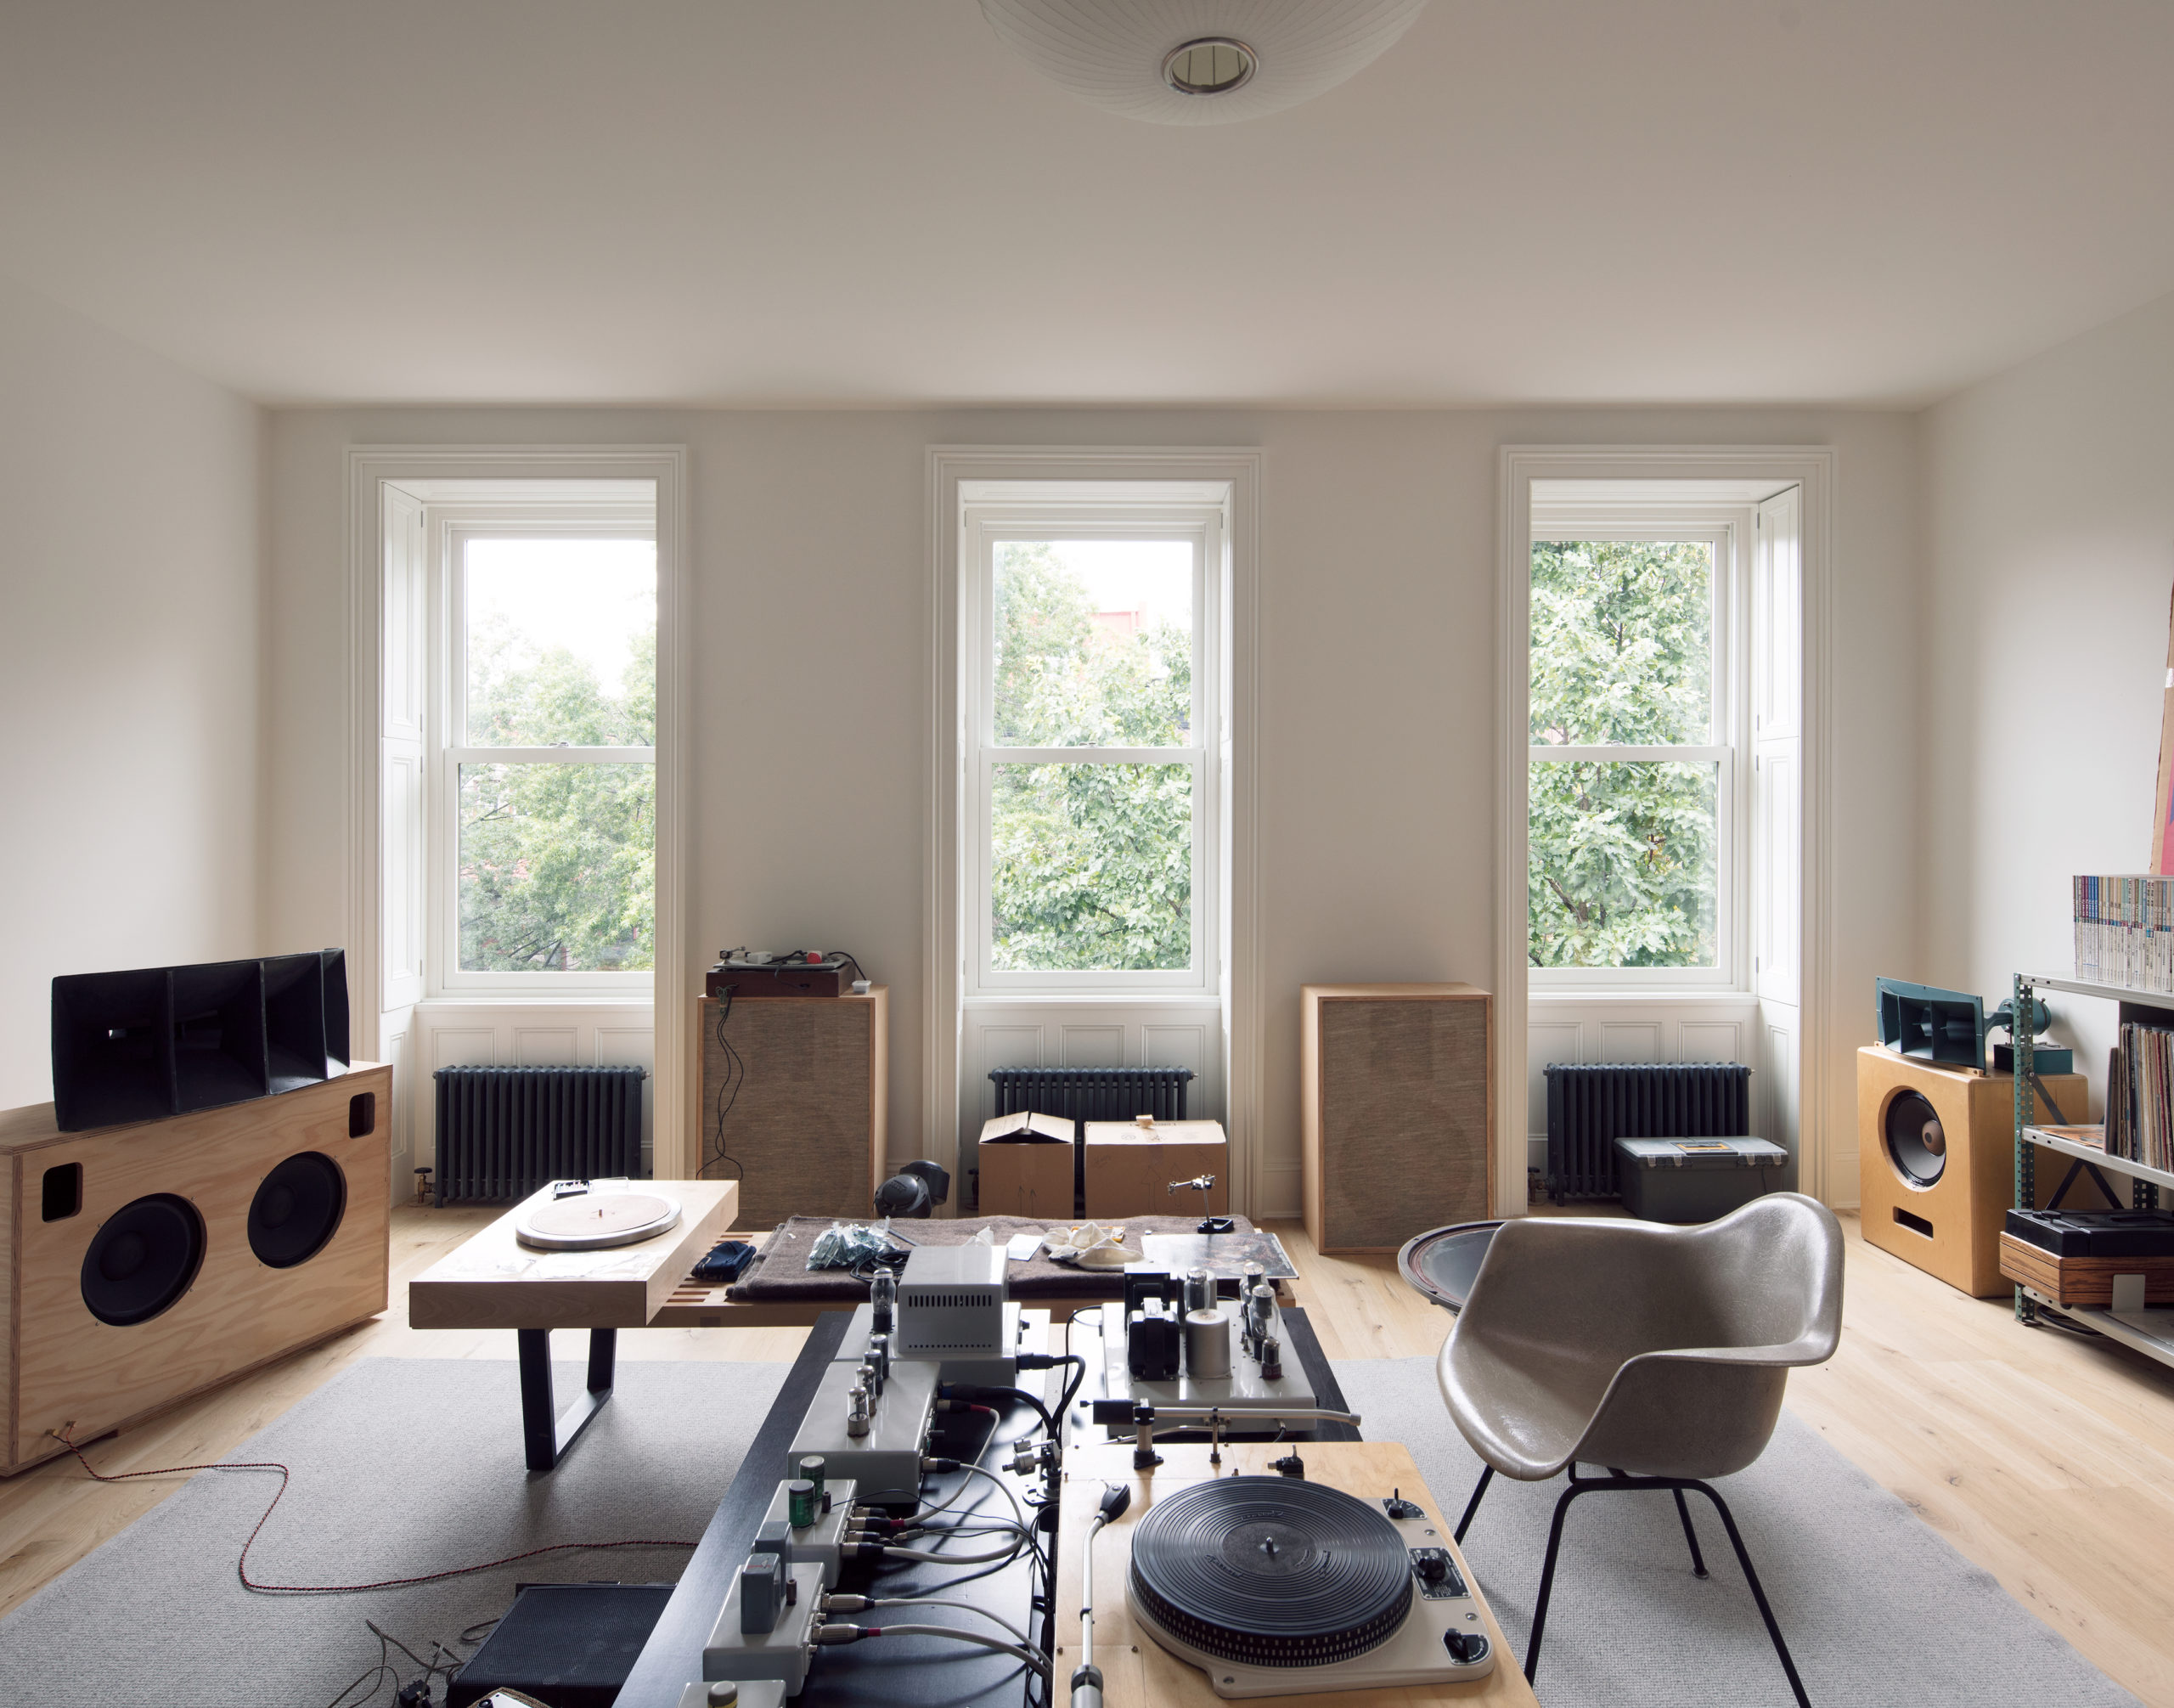 Interior of a white townhouse living room decked out in minimalist furniture, designed by Abruzzo Bodziak Architects